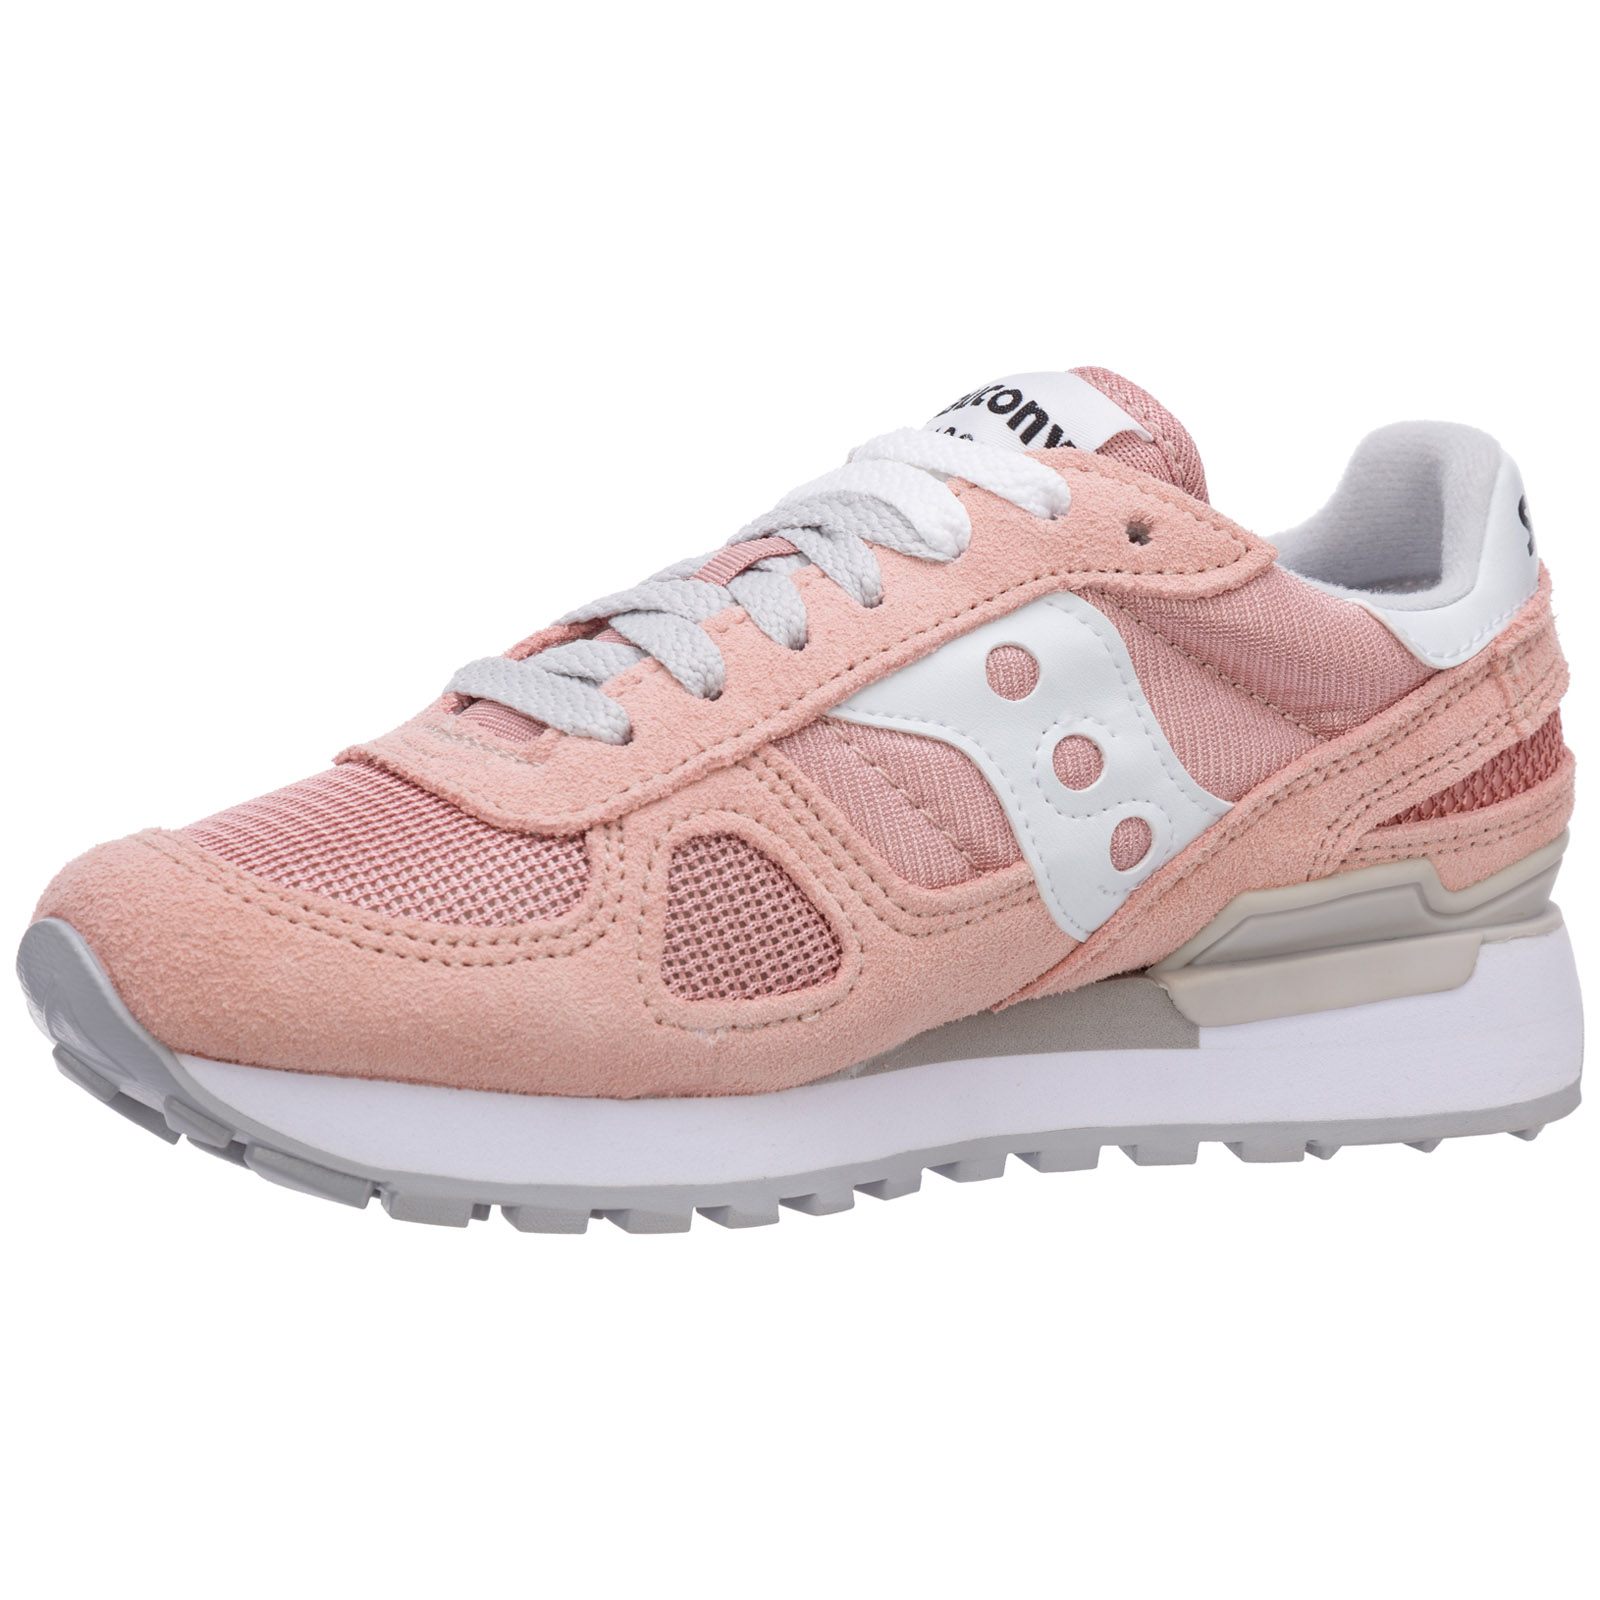 Saucony Women s shoes suede trainers sneakers shadow o 97334fe59b9